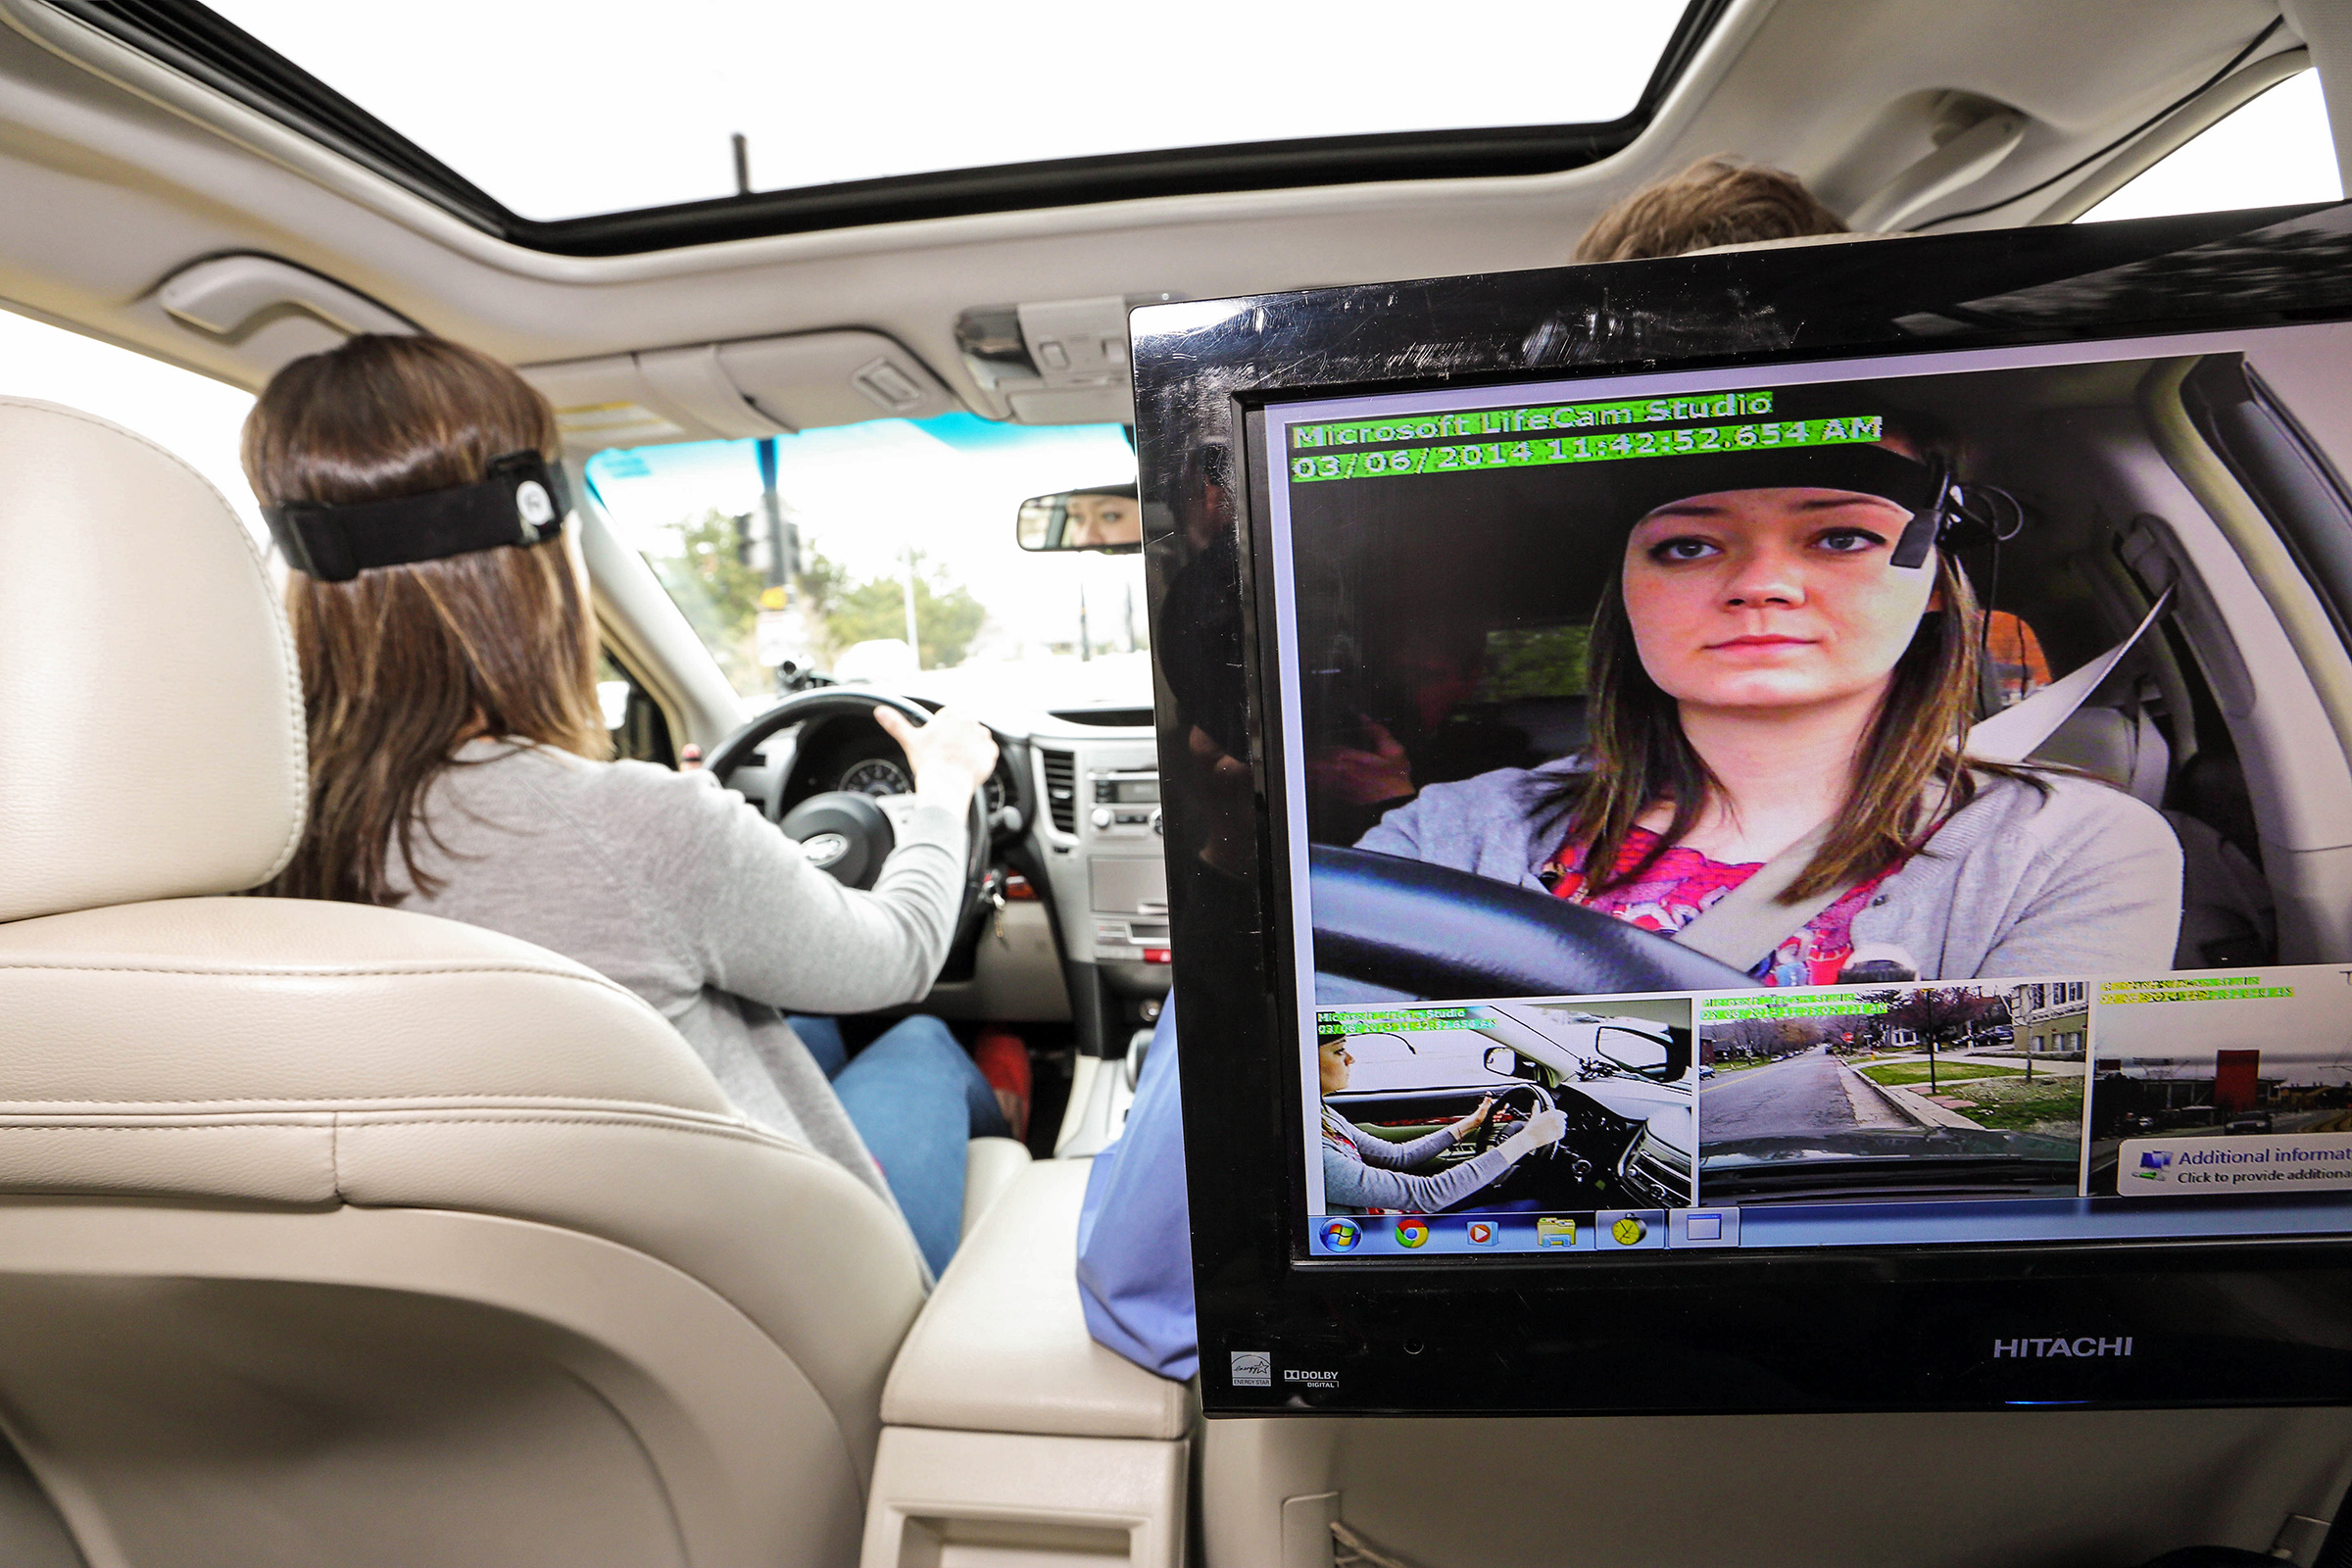 A study participant drives while research equipment monitors reaction times and gathers other data. A set of new University of Utah studies for the AAA Foundation for Traffic Safety found that hands-free, voice-controlled infotainment systems in vehicles can distract drivers more than was previously believed.